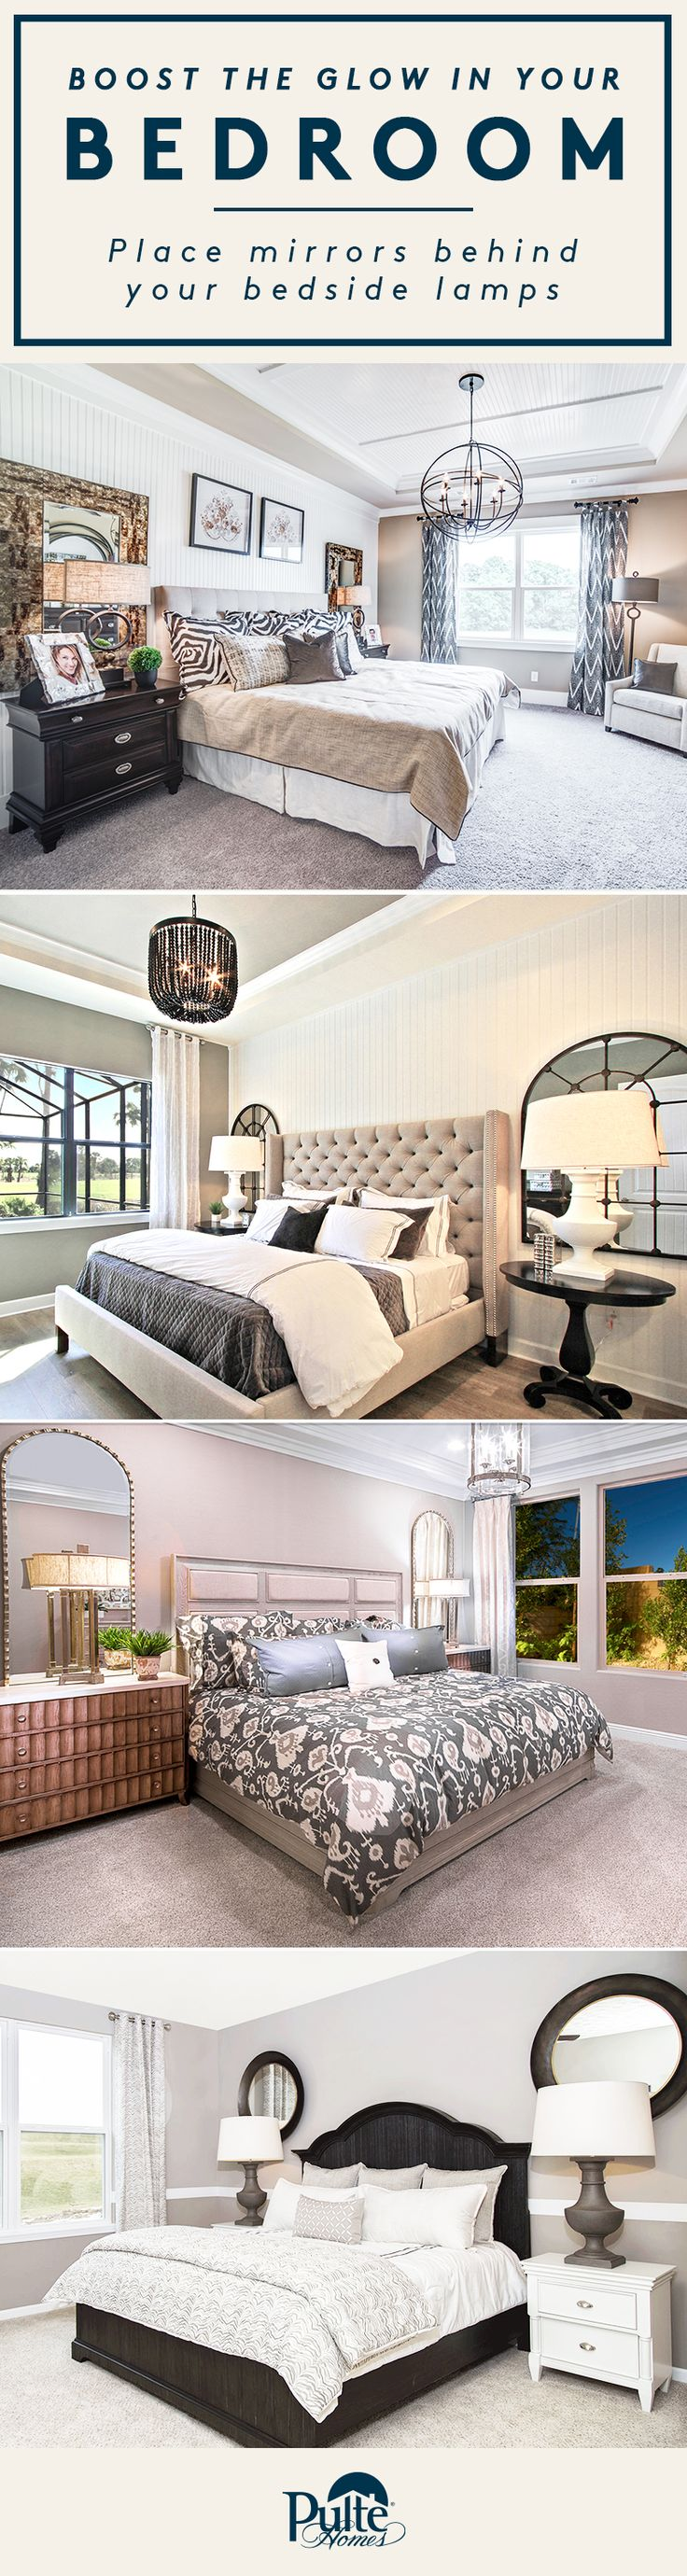 Mirrors are like a decorator's magic wand, instantly making rooms appear lighter and brighter. Give your bedroom a warm glow by placing a mirror in front of a lamp on your nightstand.   Pulte Homes